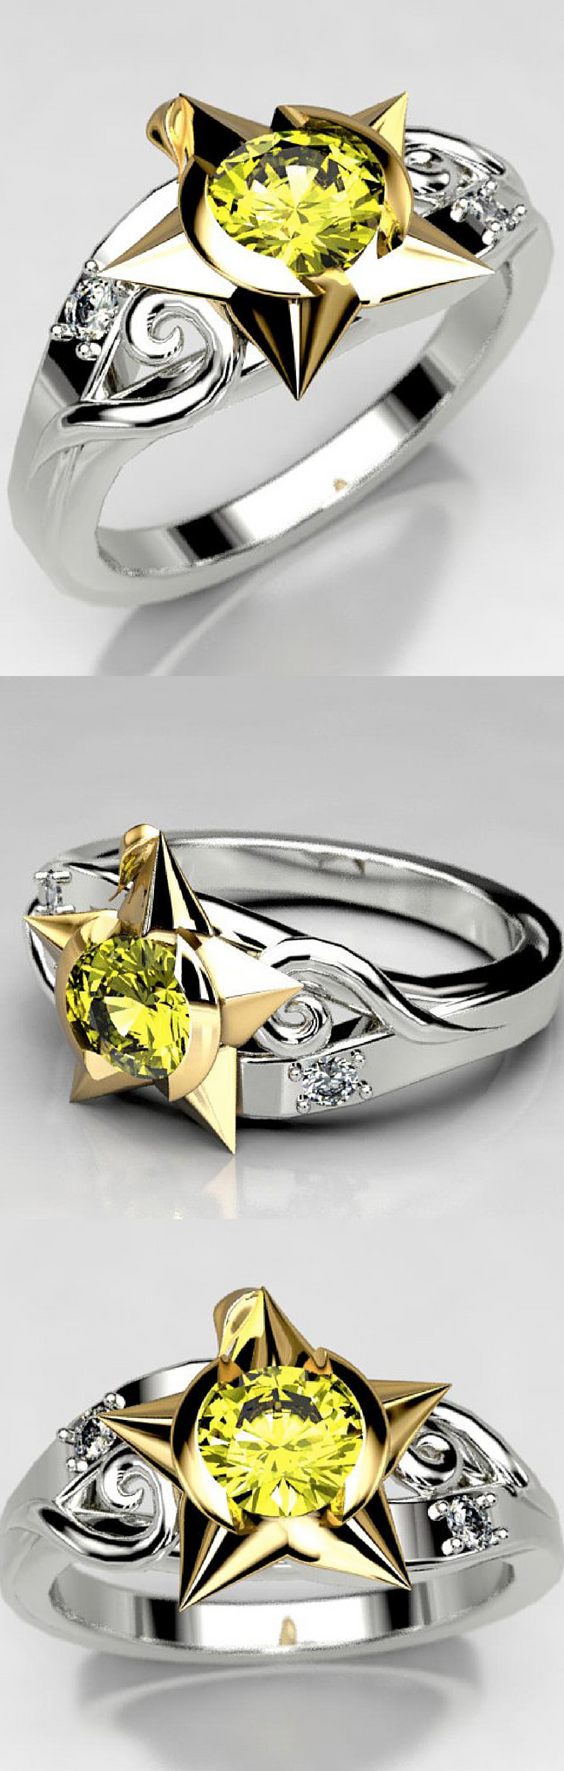 Kingdom Hearts Paopu Fruit Engagement Ring.png